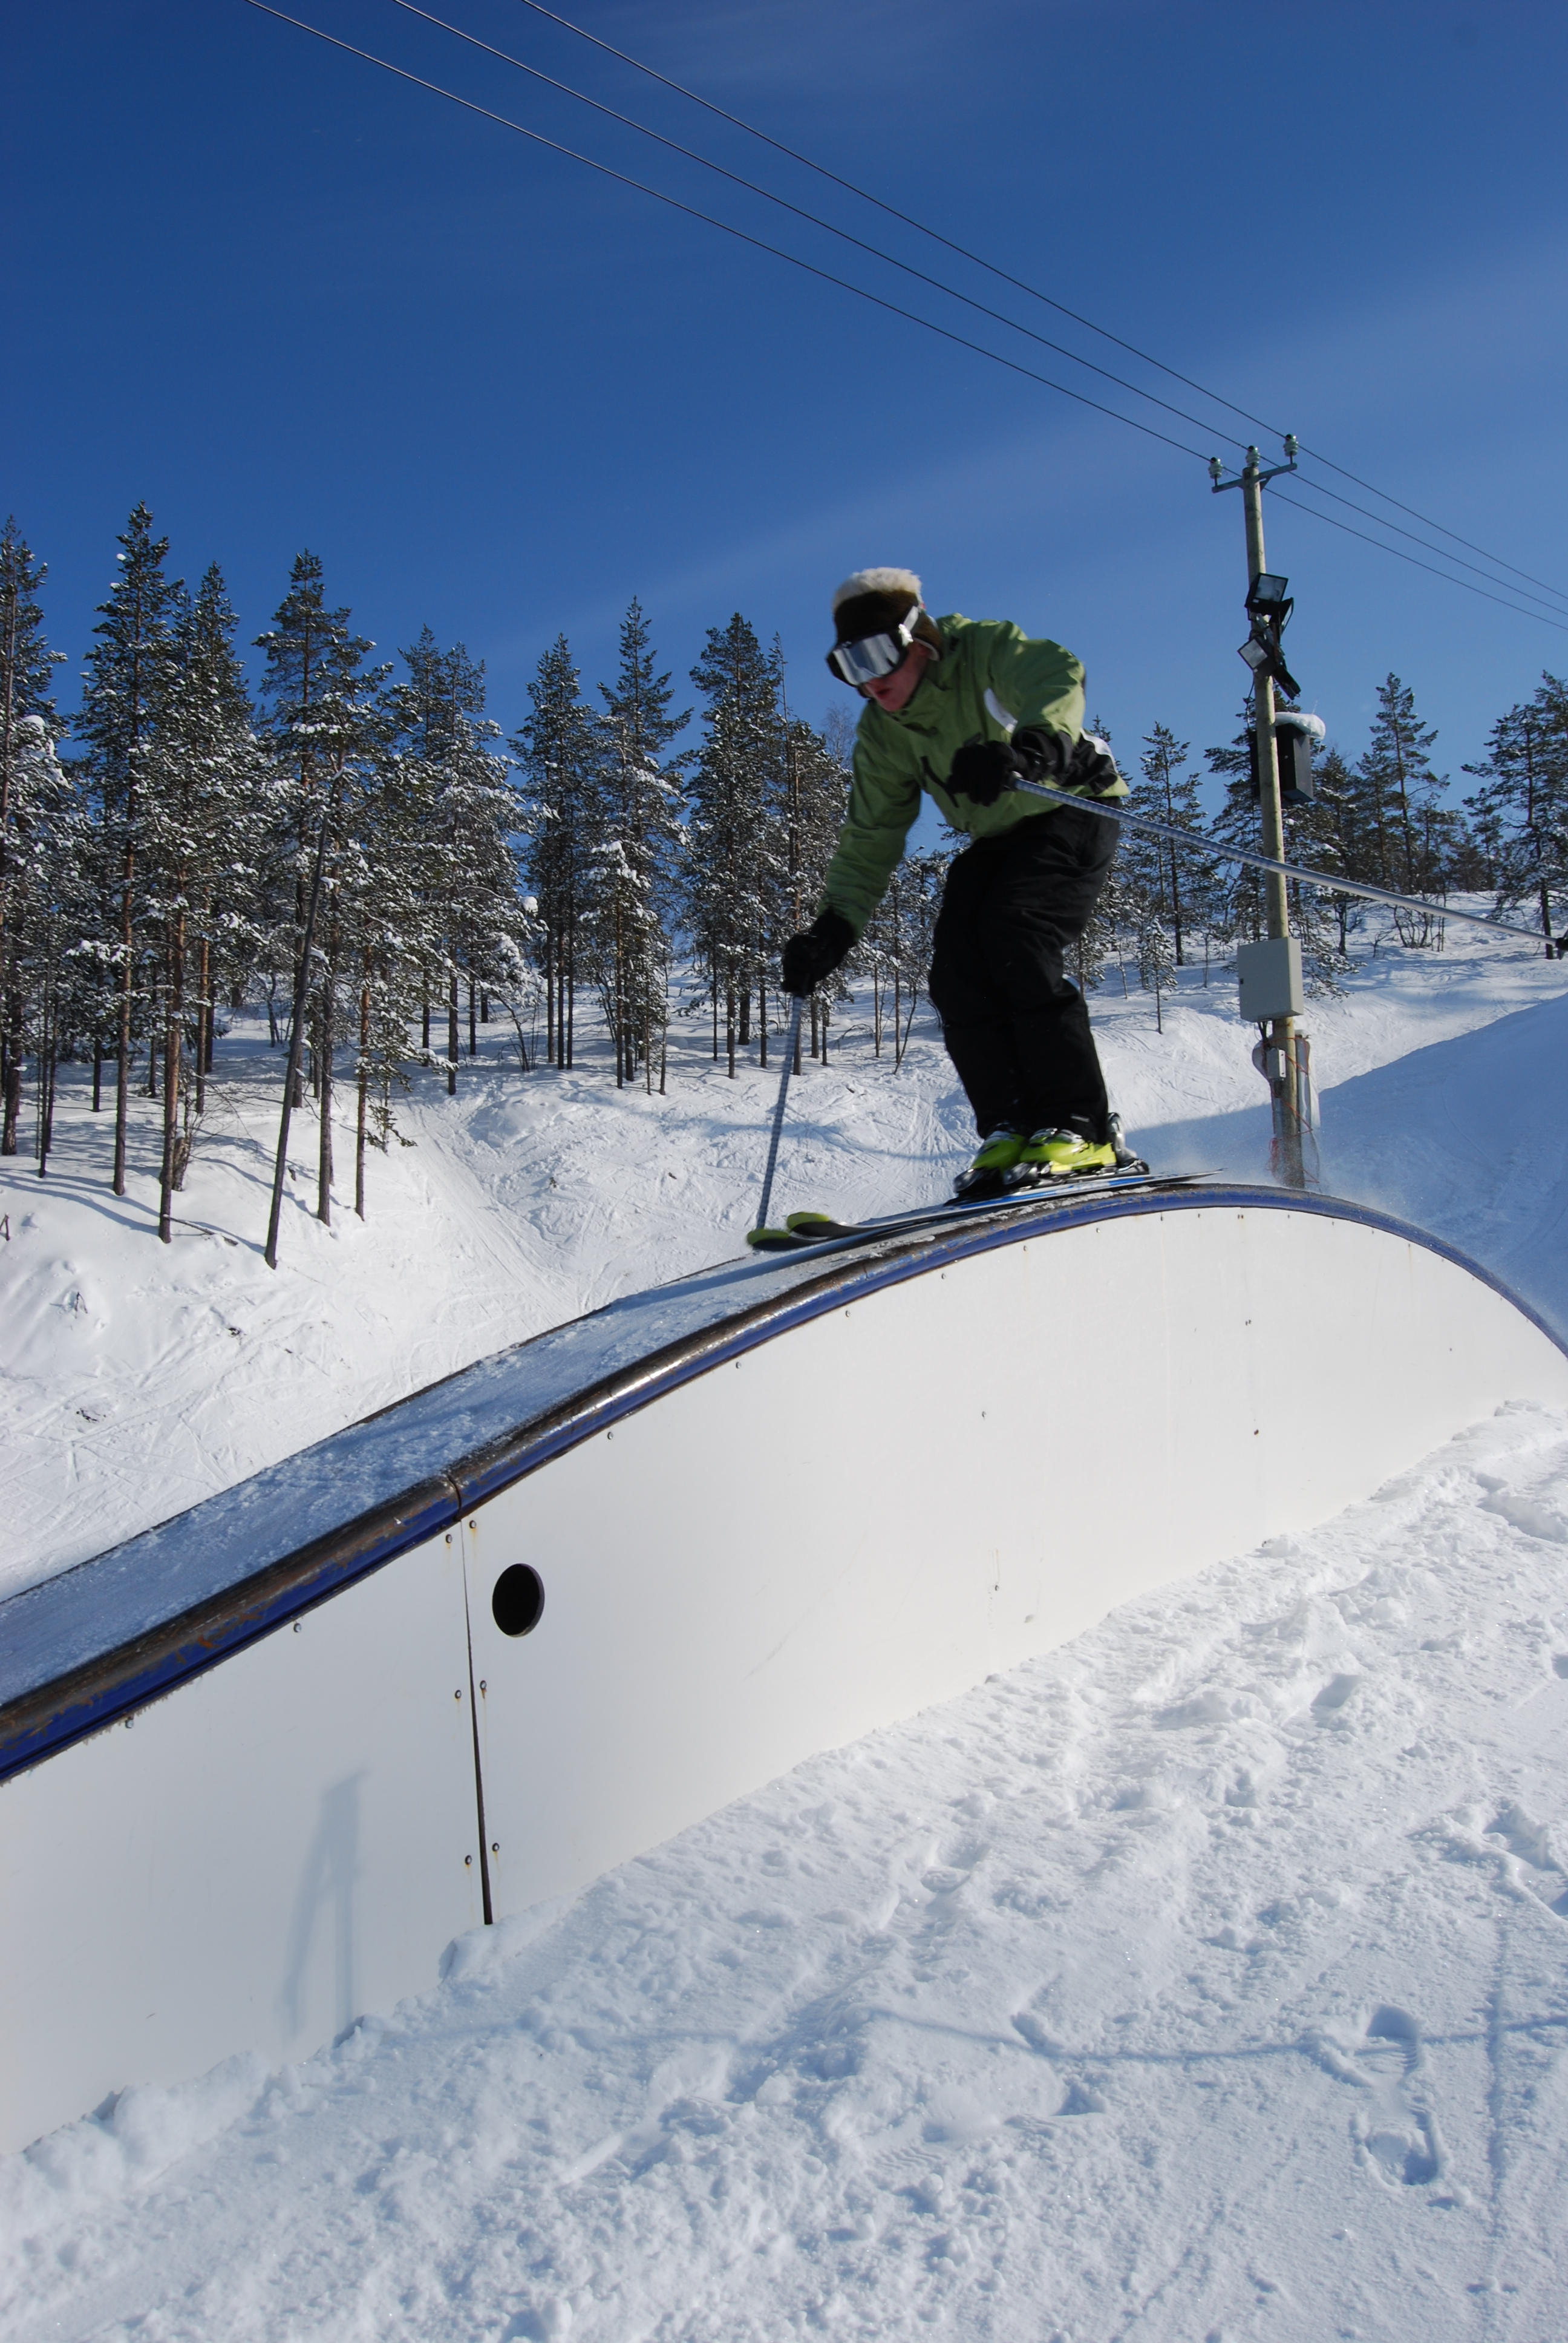 Snowboarding and its three forms.